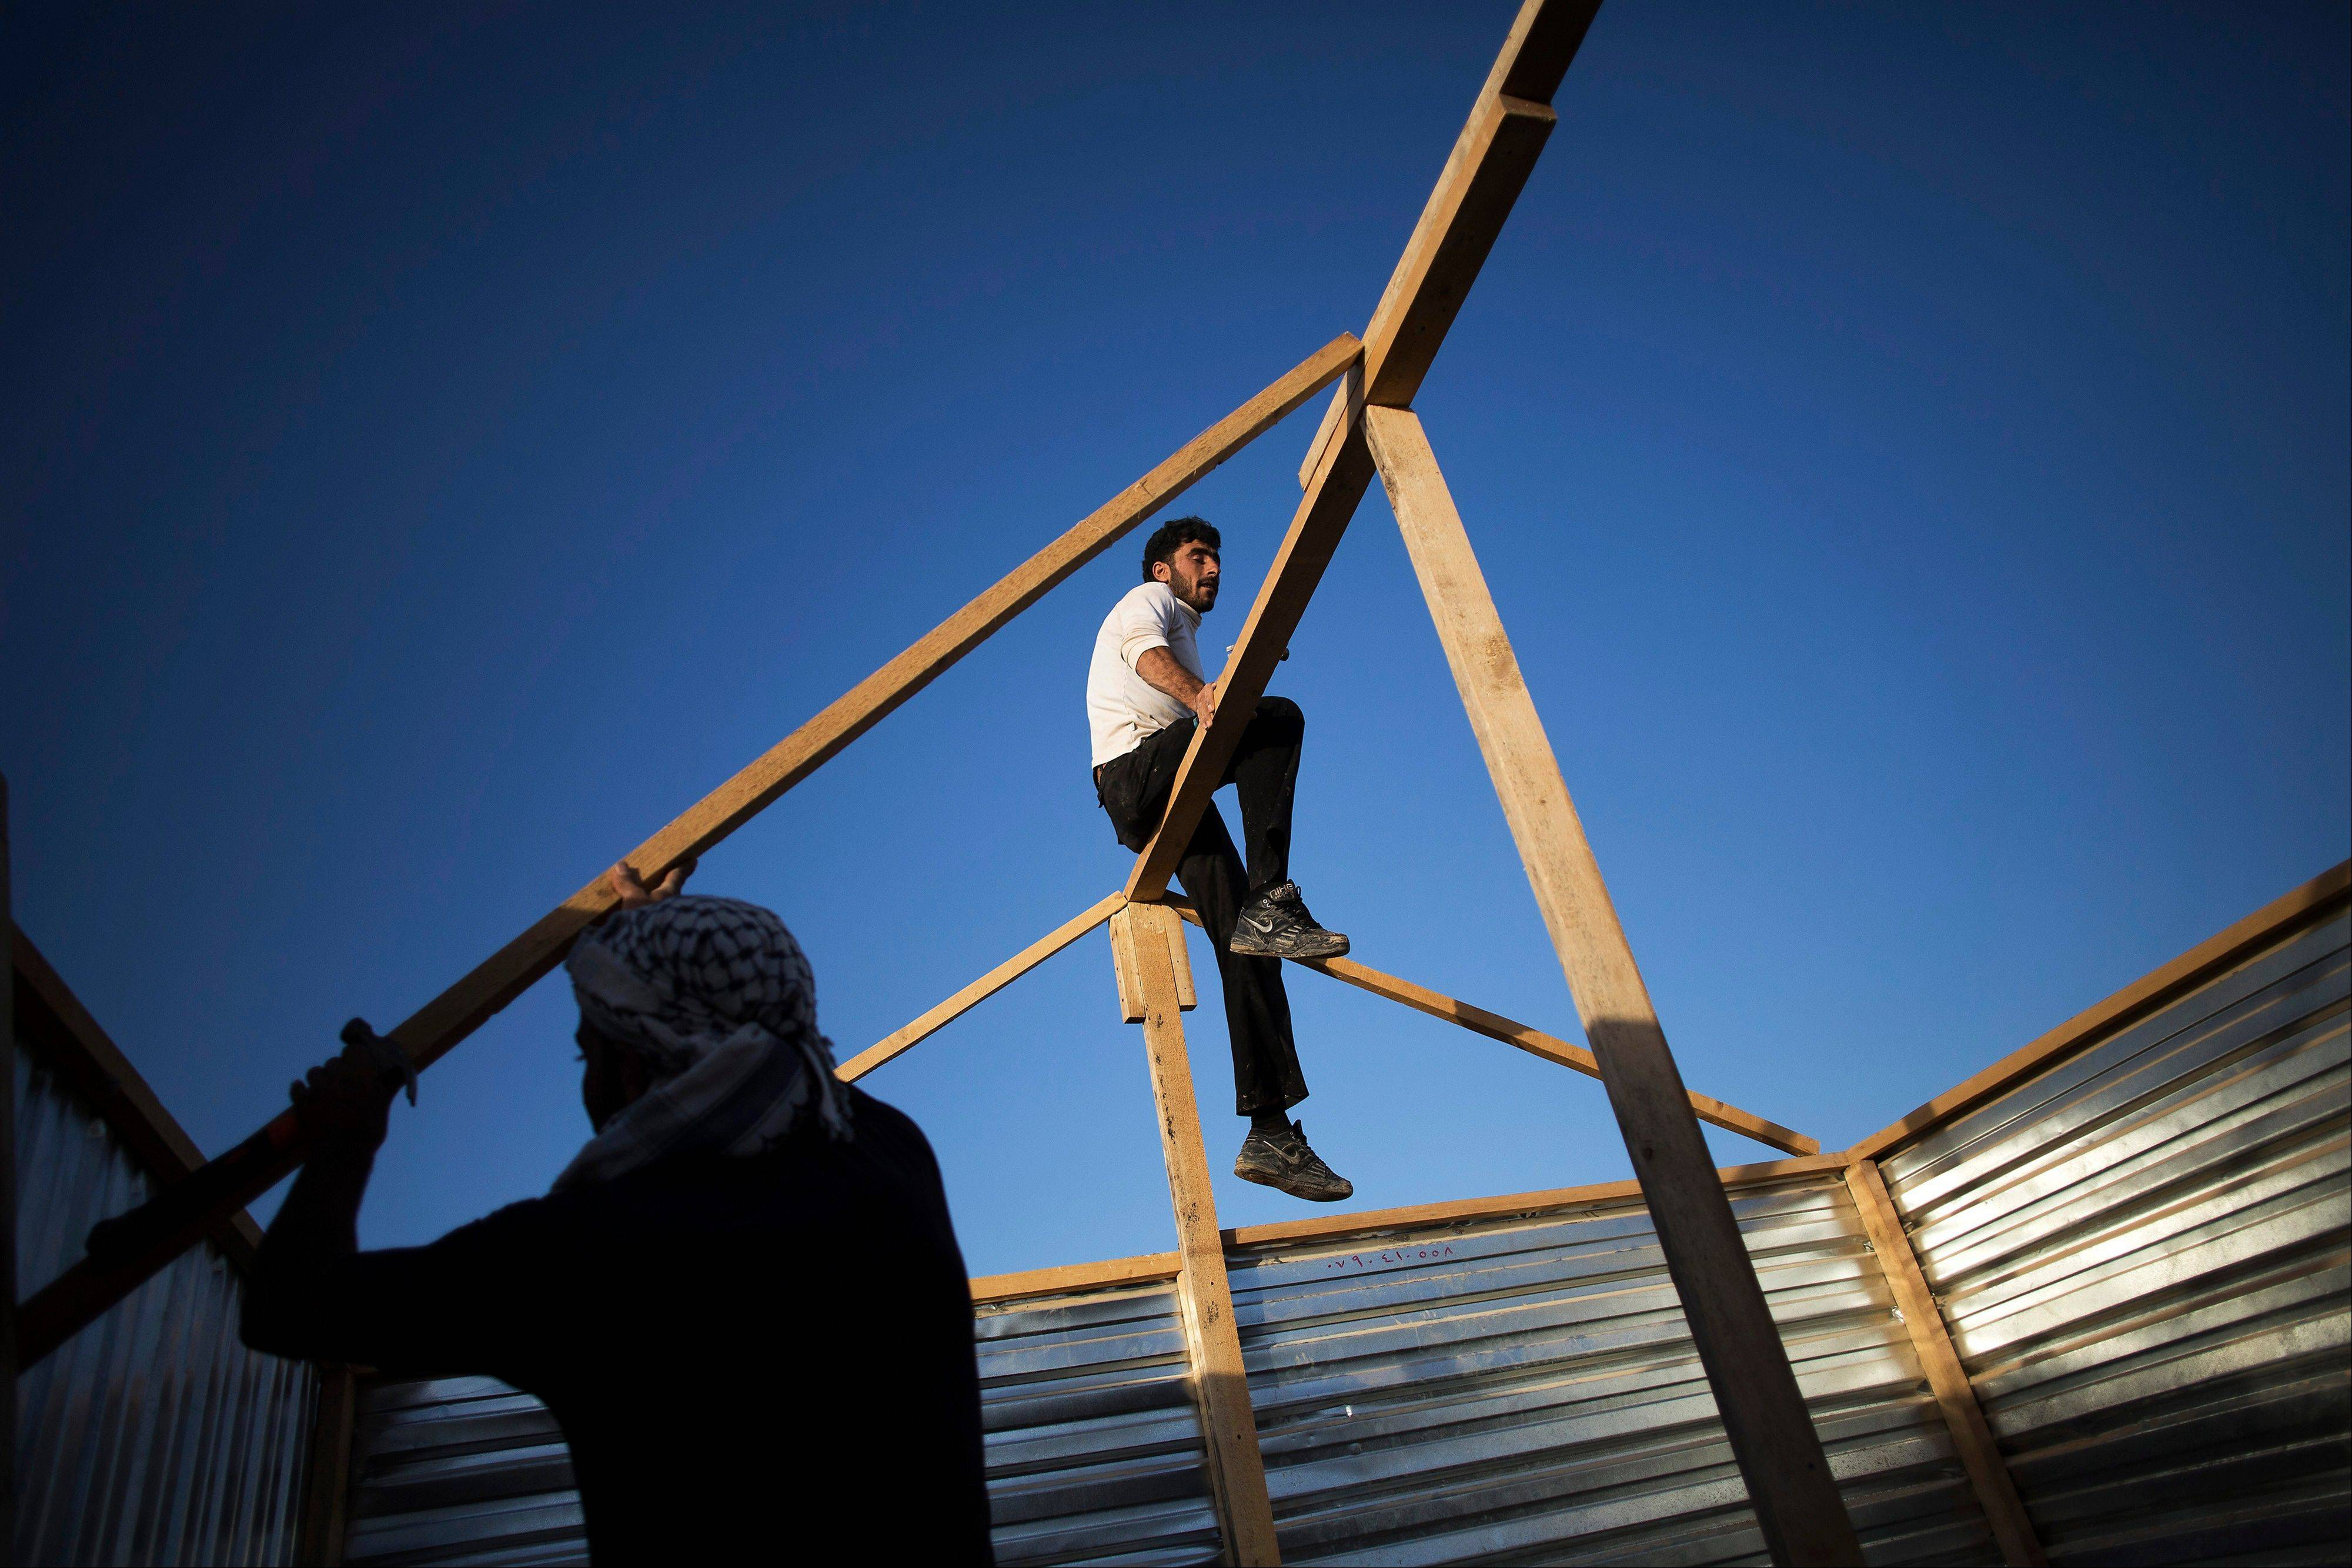 Syrian refugees build a makeshift house at the Zaatari refugee camp near the Syrian border in Jordan. With Syria�s civil war in its third year, more than 2 million Syrians have fled their country. About 100,000 live in this camp.